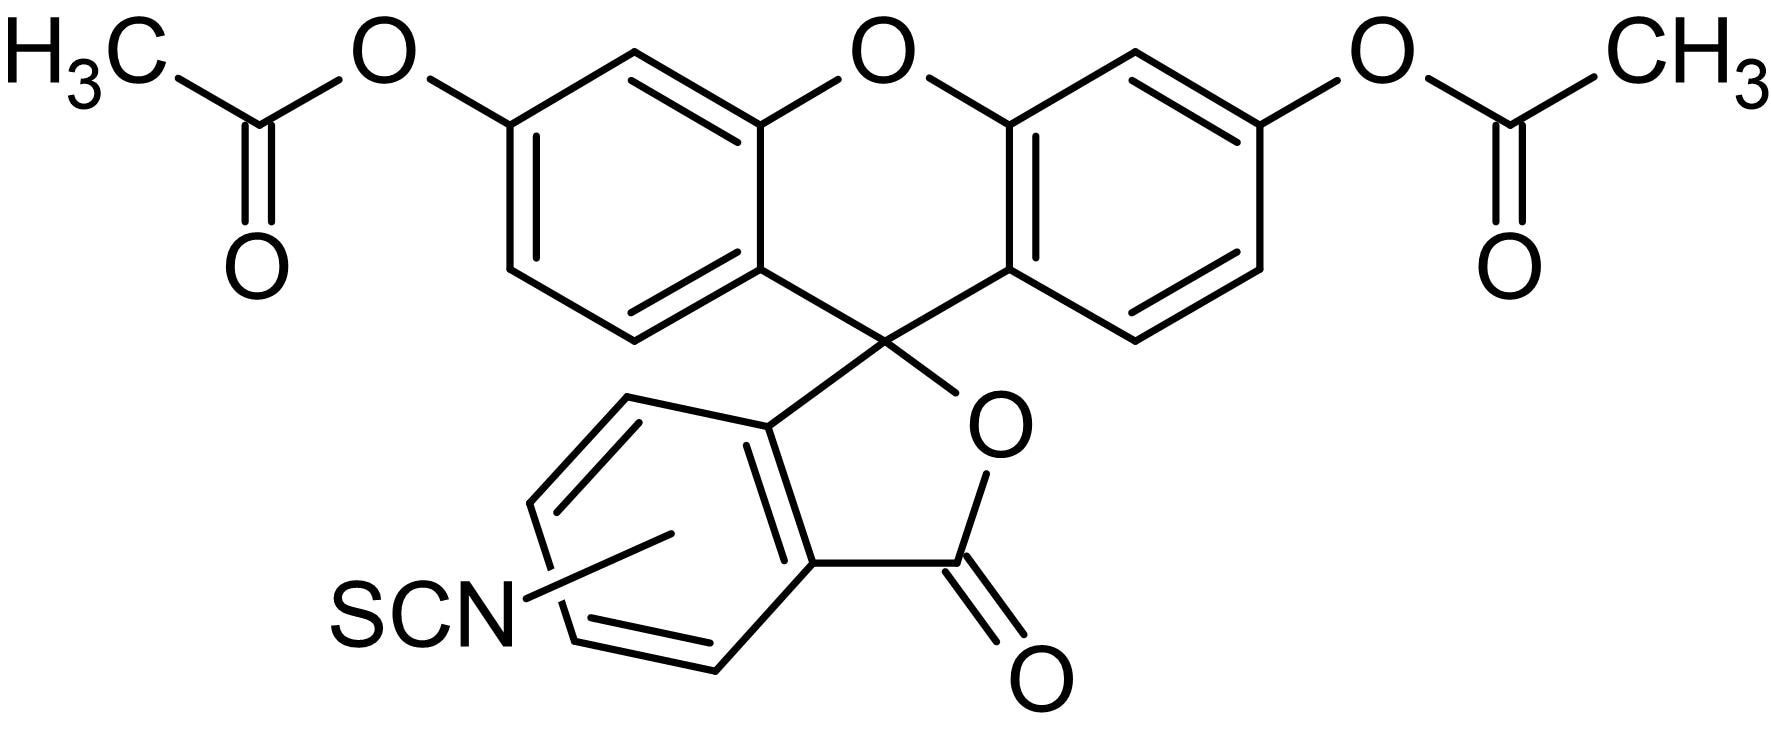 Chemical Structure - 5(6)-FITC DA, Fluorogenic esterase substrate (ab145463)